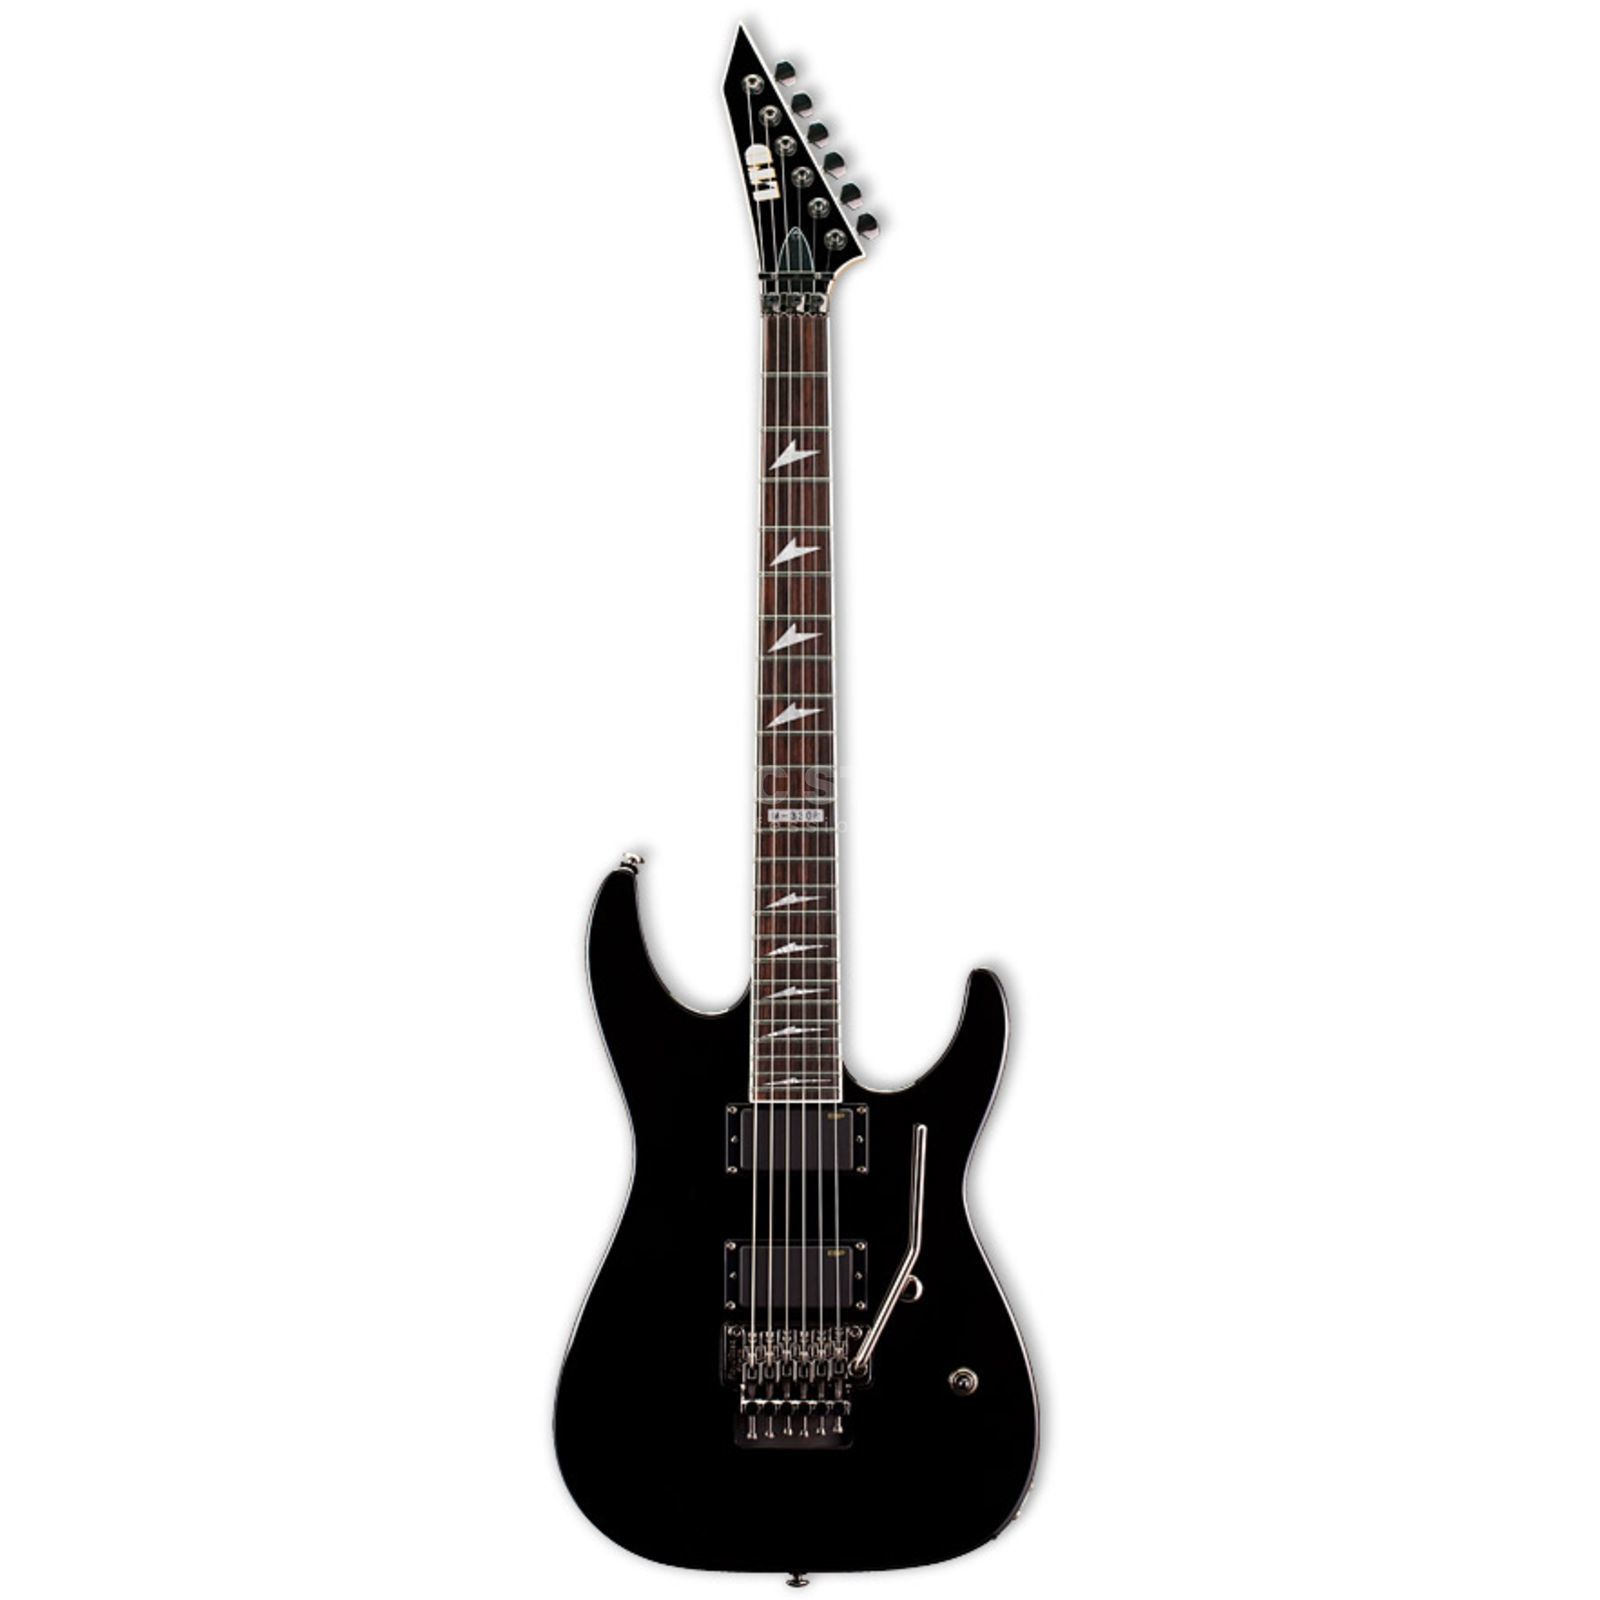 ESP LTD M-330R Electric Guitar, Bl ack   Produktbillede